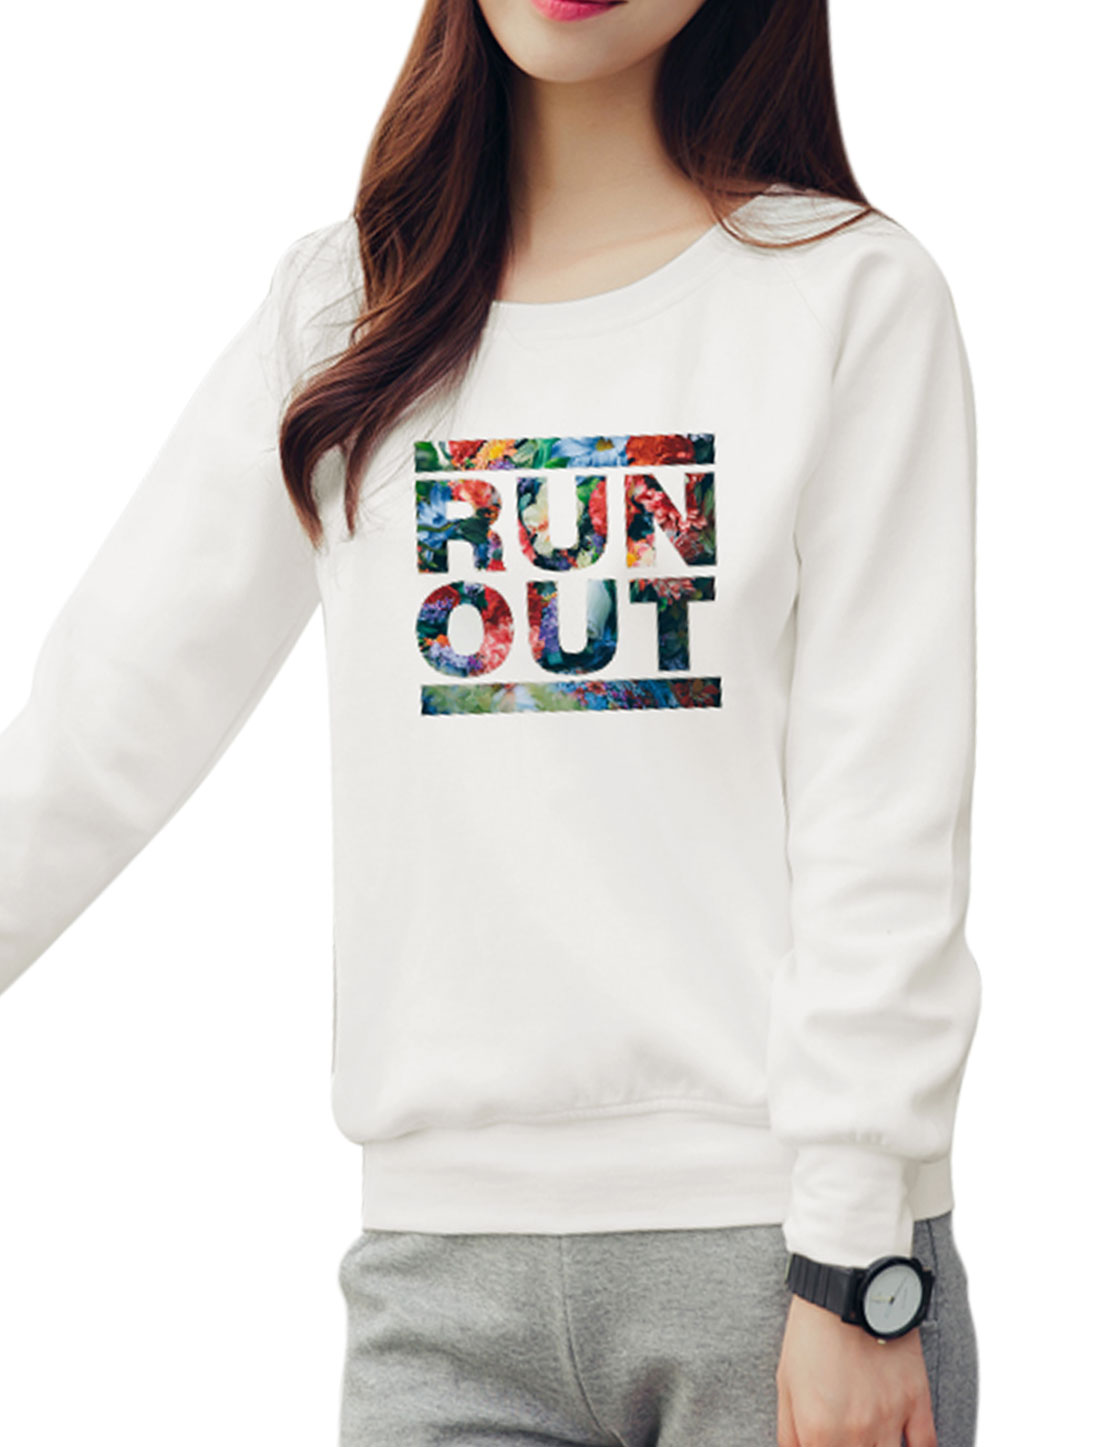 Women Raglan Sleeves Slant Pockets Floral Letters Sweatshirt White S